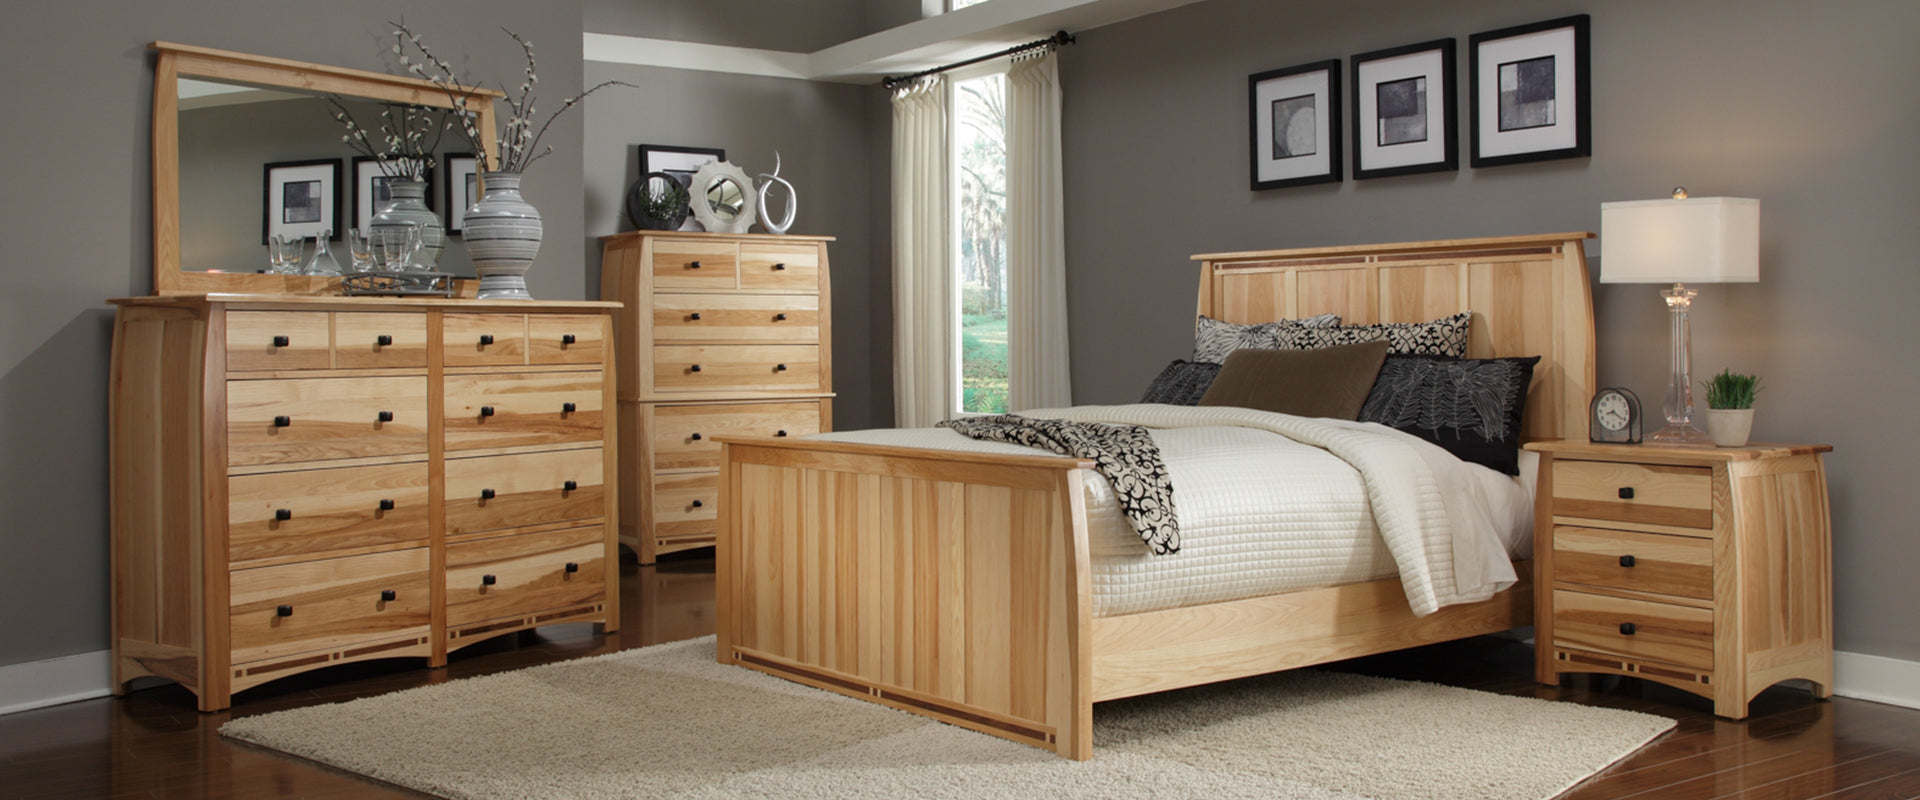 Vancouver Woodworks | Wood Furniture Store Portland Vancouver Camas